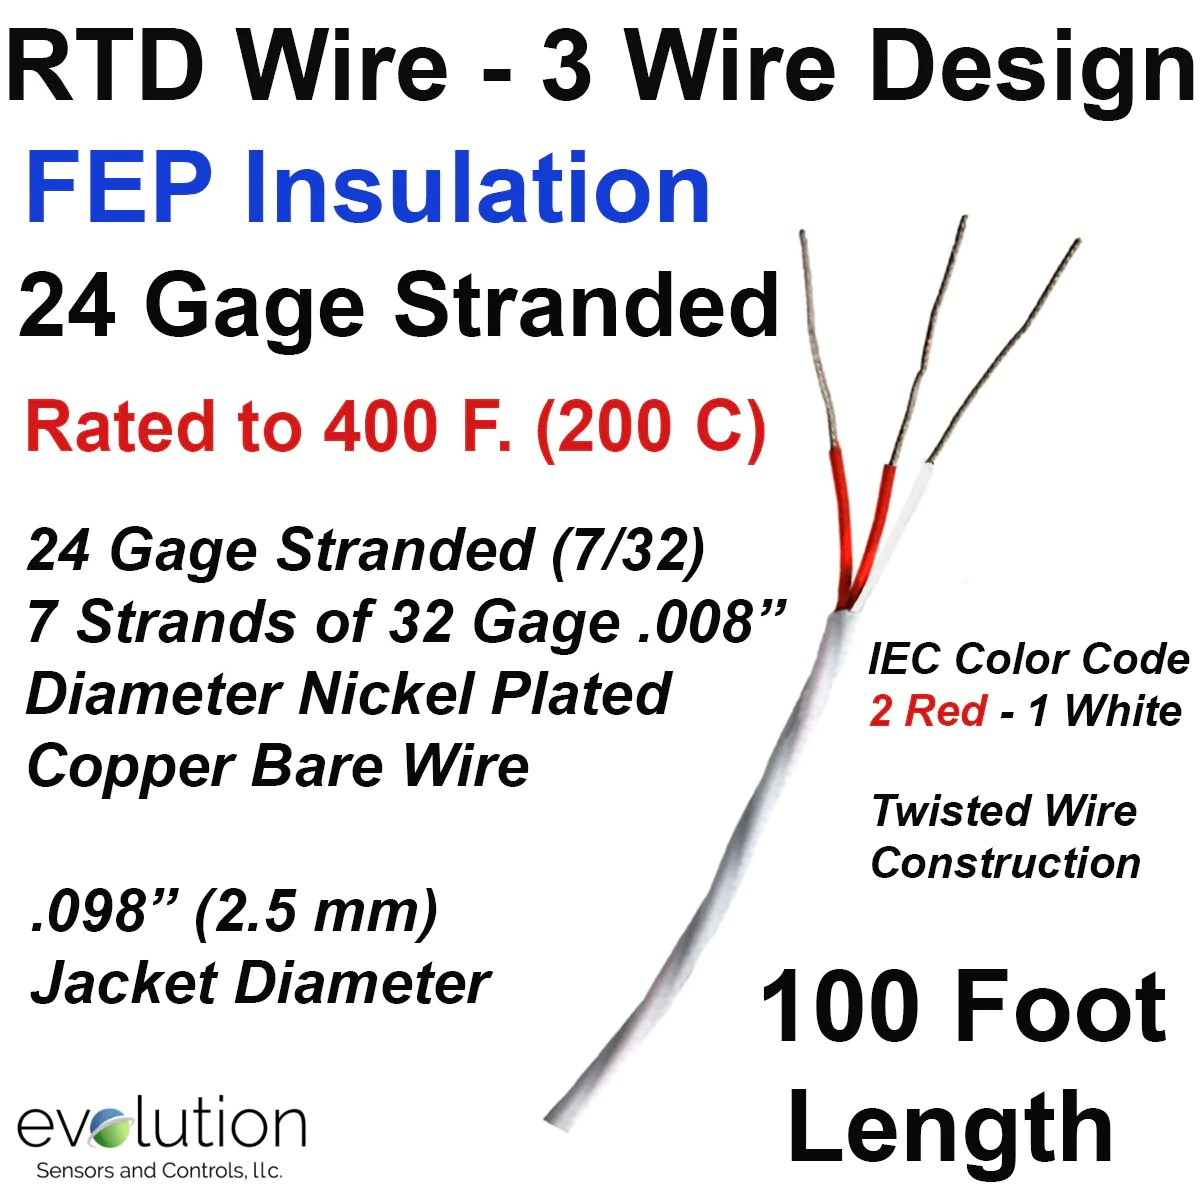 hight resolution of rtd wiring color code wiring diagram show rtd wire color code rtd wiring color code